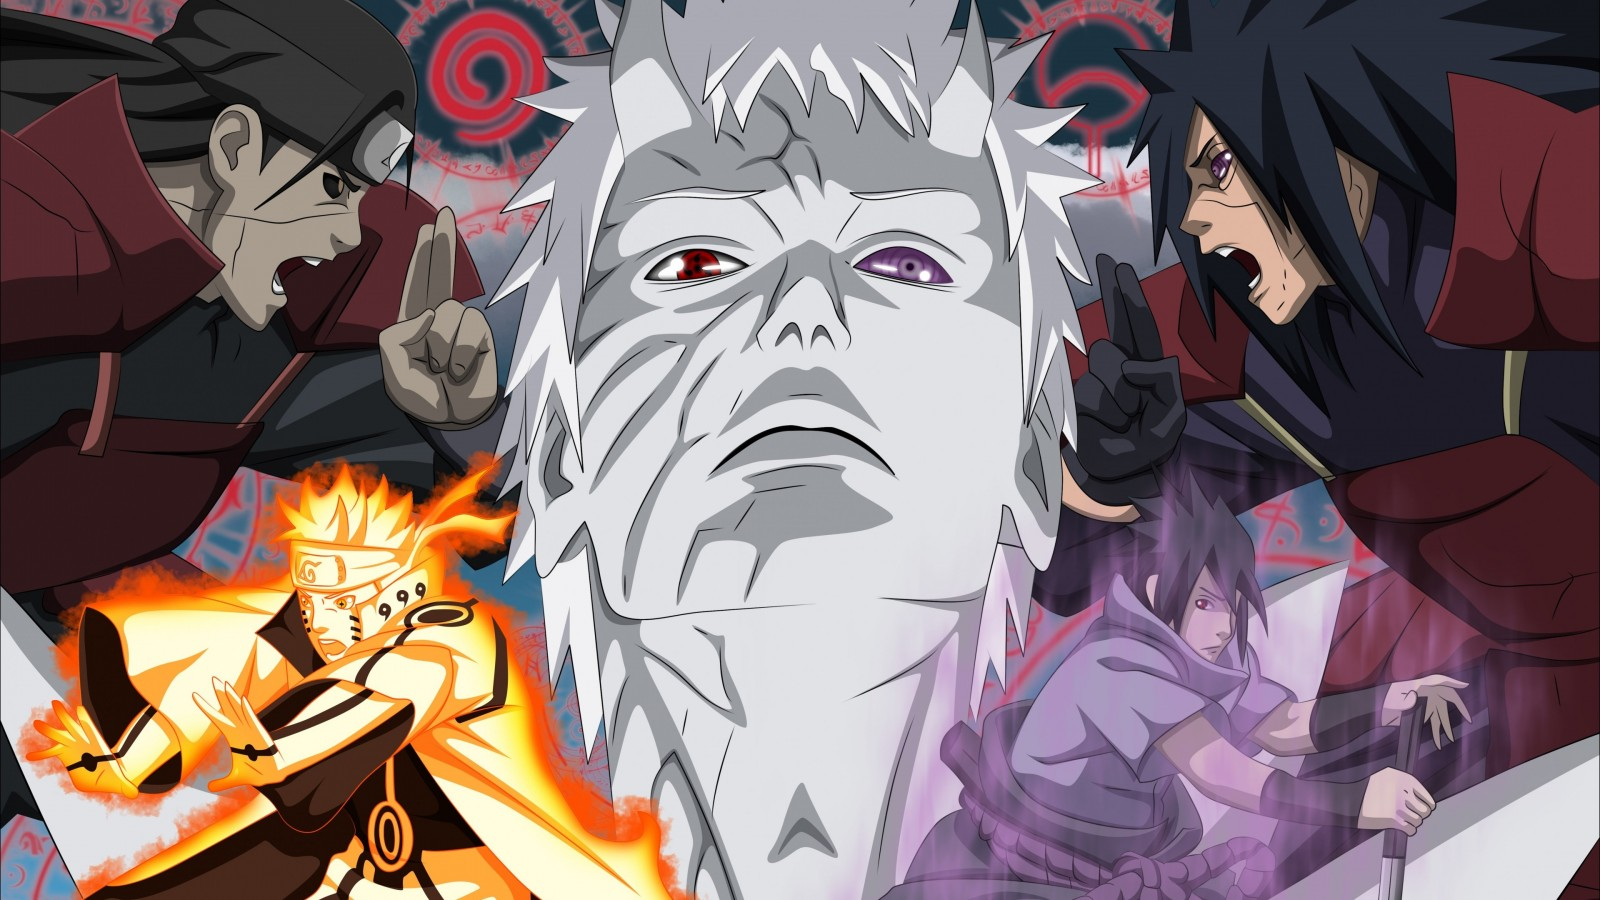 Naruto Vs. Madara Uchiha Wallpaper for Desktop 1600x900